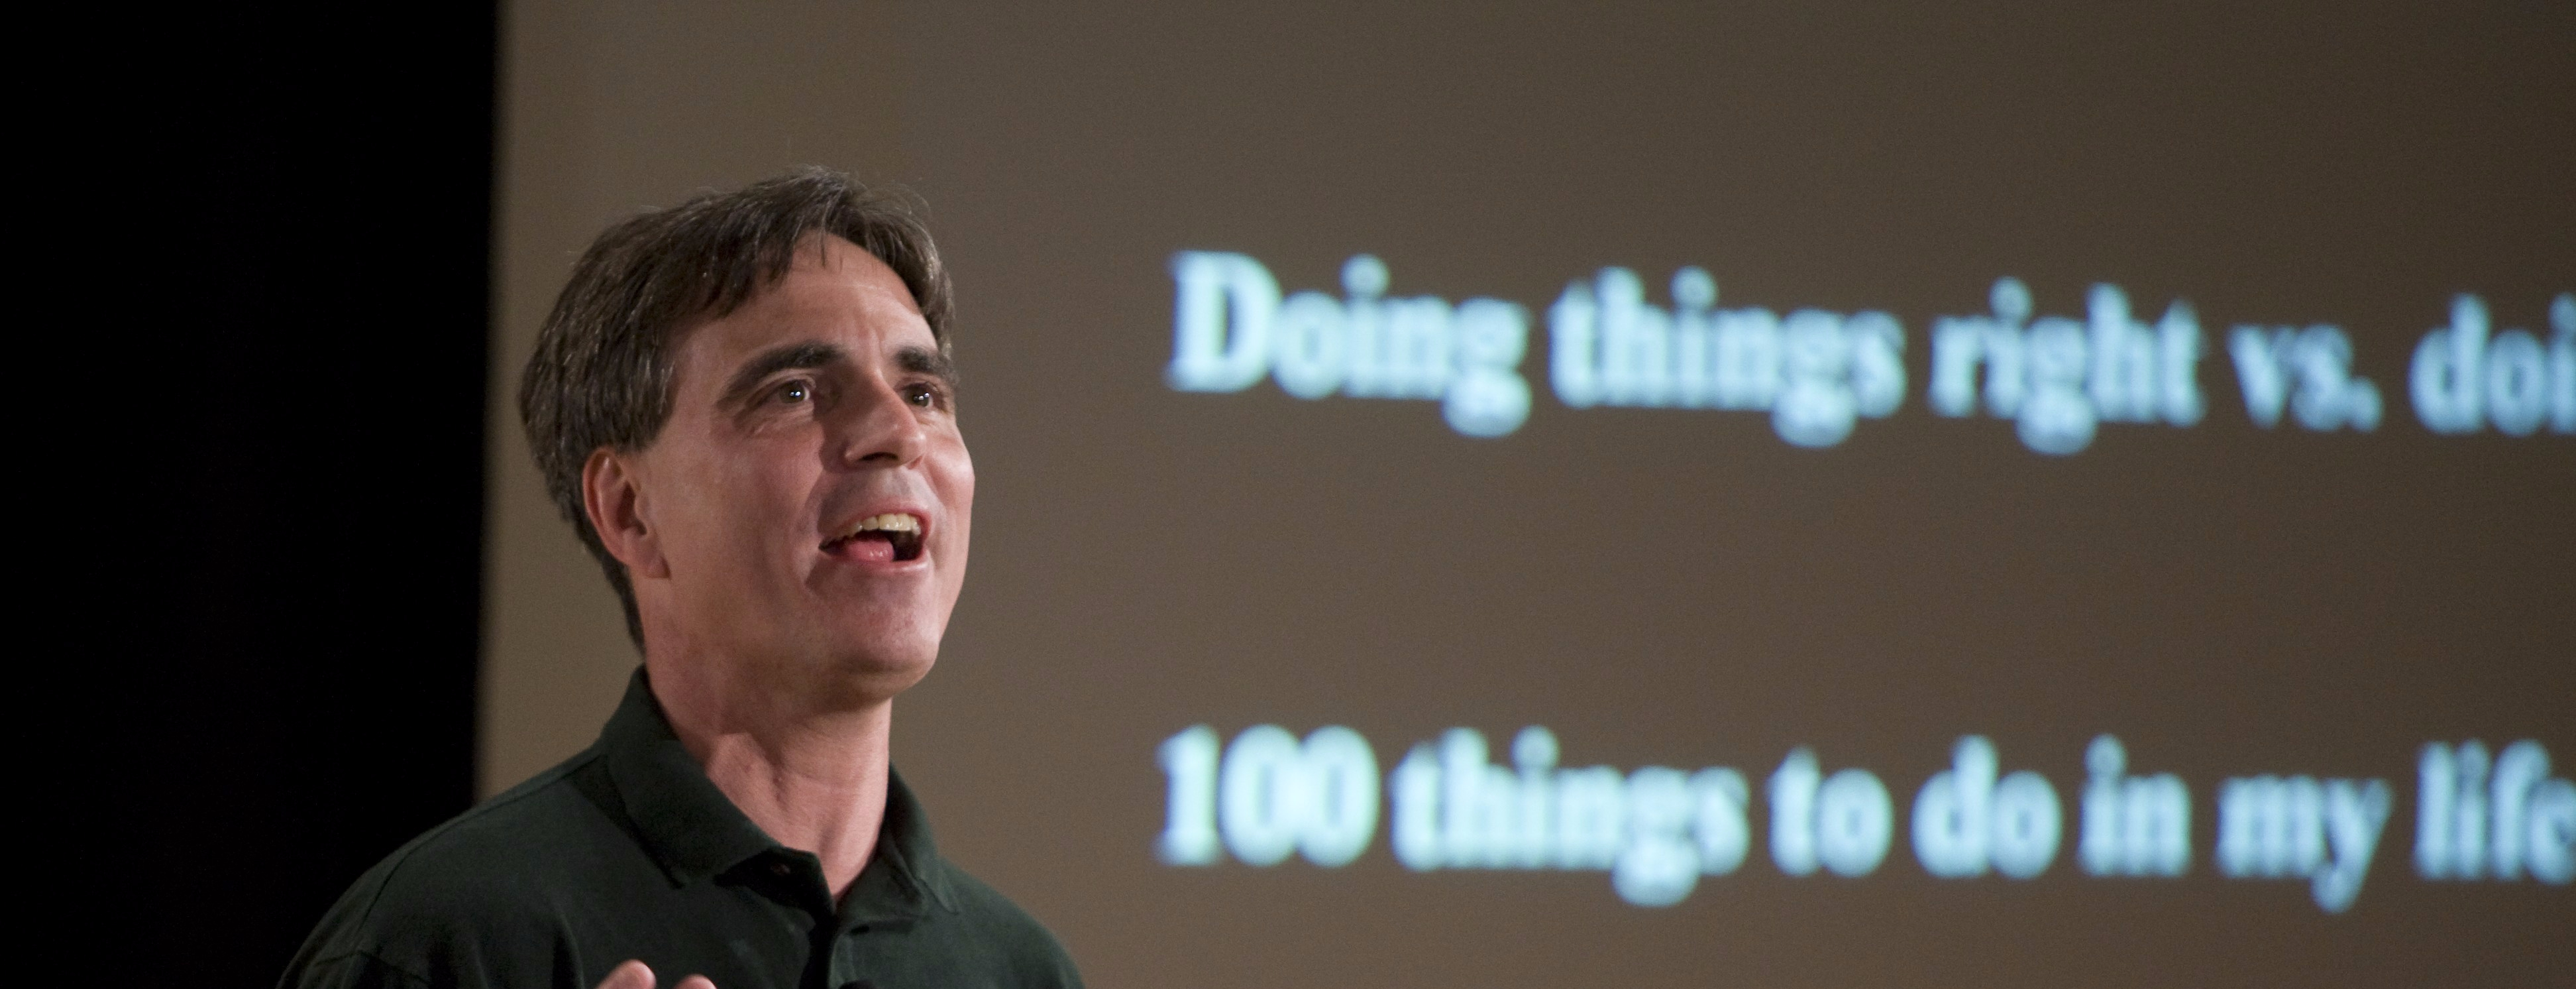 """The University of Virginia's School of Engineering hosted Randy Pausch for his lecture on """"Time Management"""" at Cabell Hall in Charlottesville, VA on November 27, 2007."""